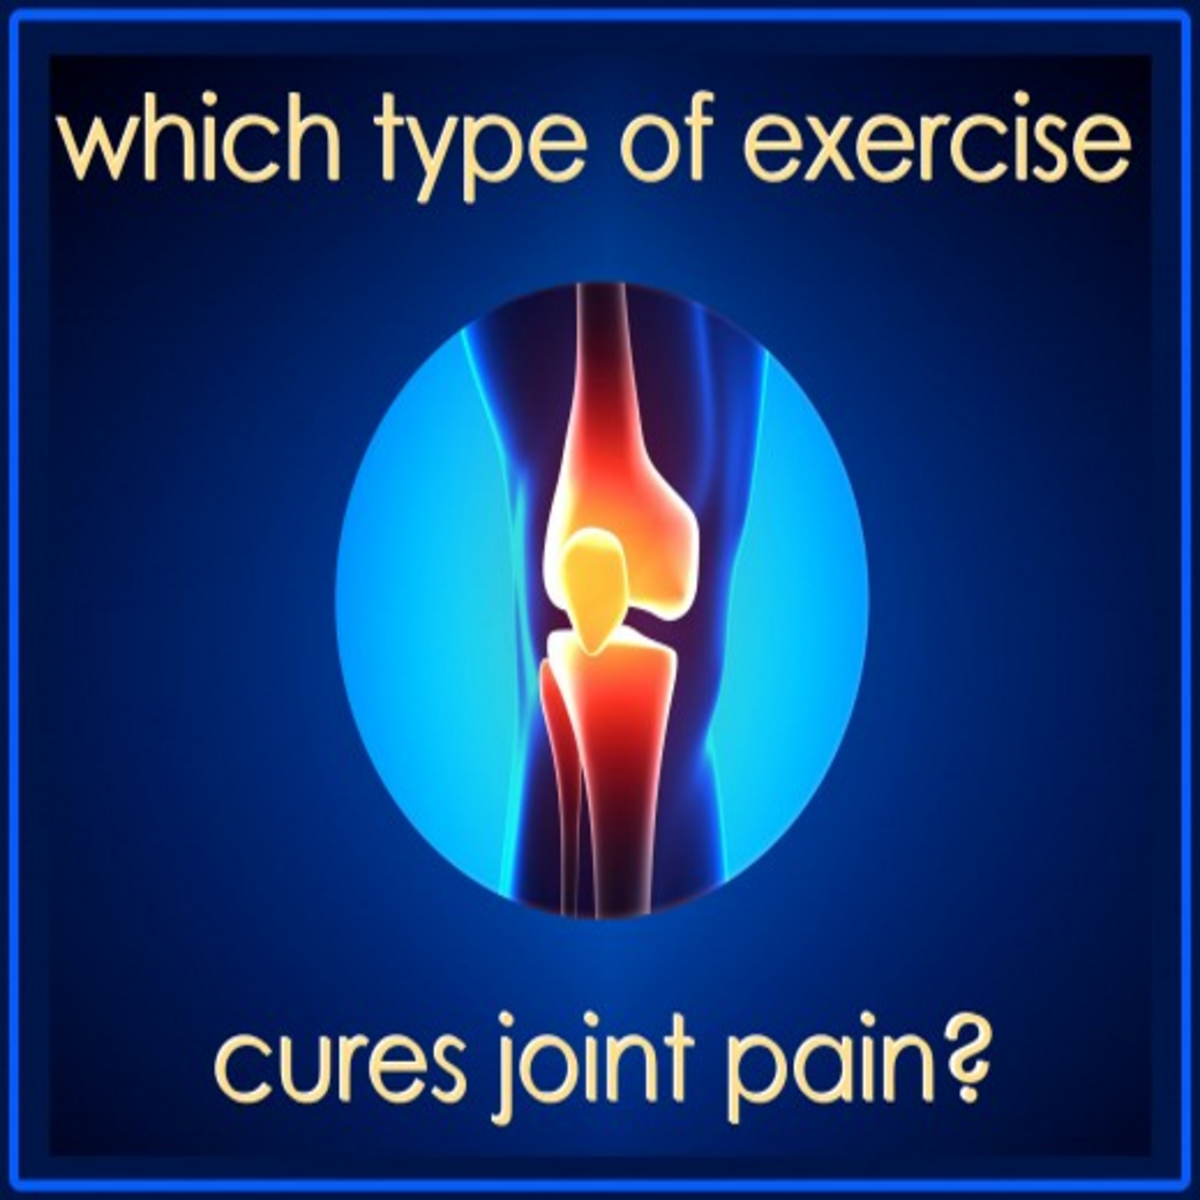 10 Best Types of Exercise to Ease Arthritic Pain